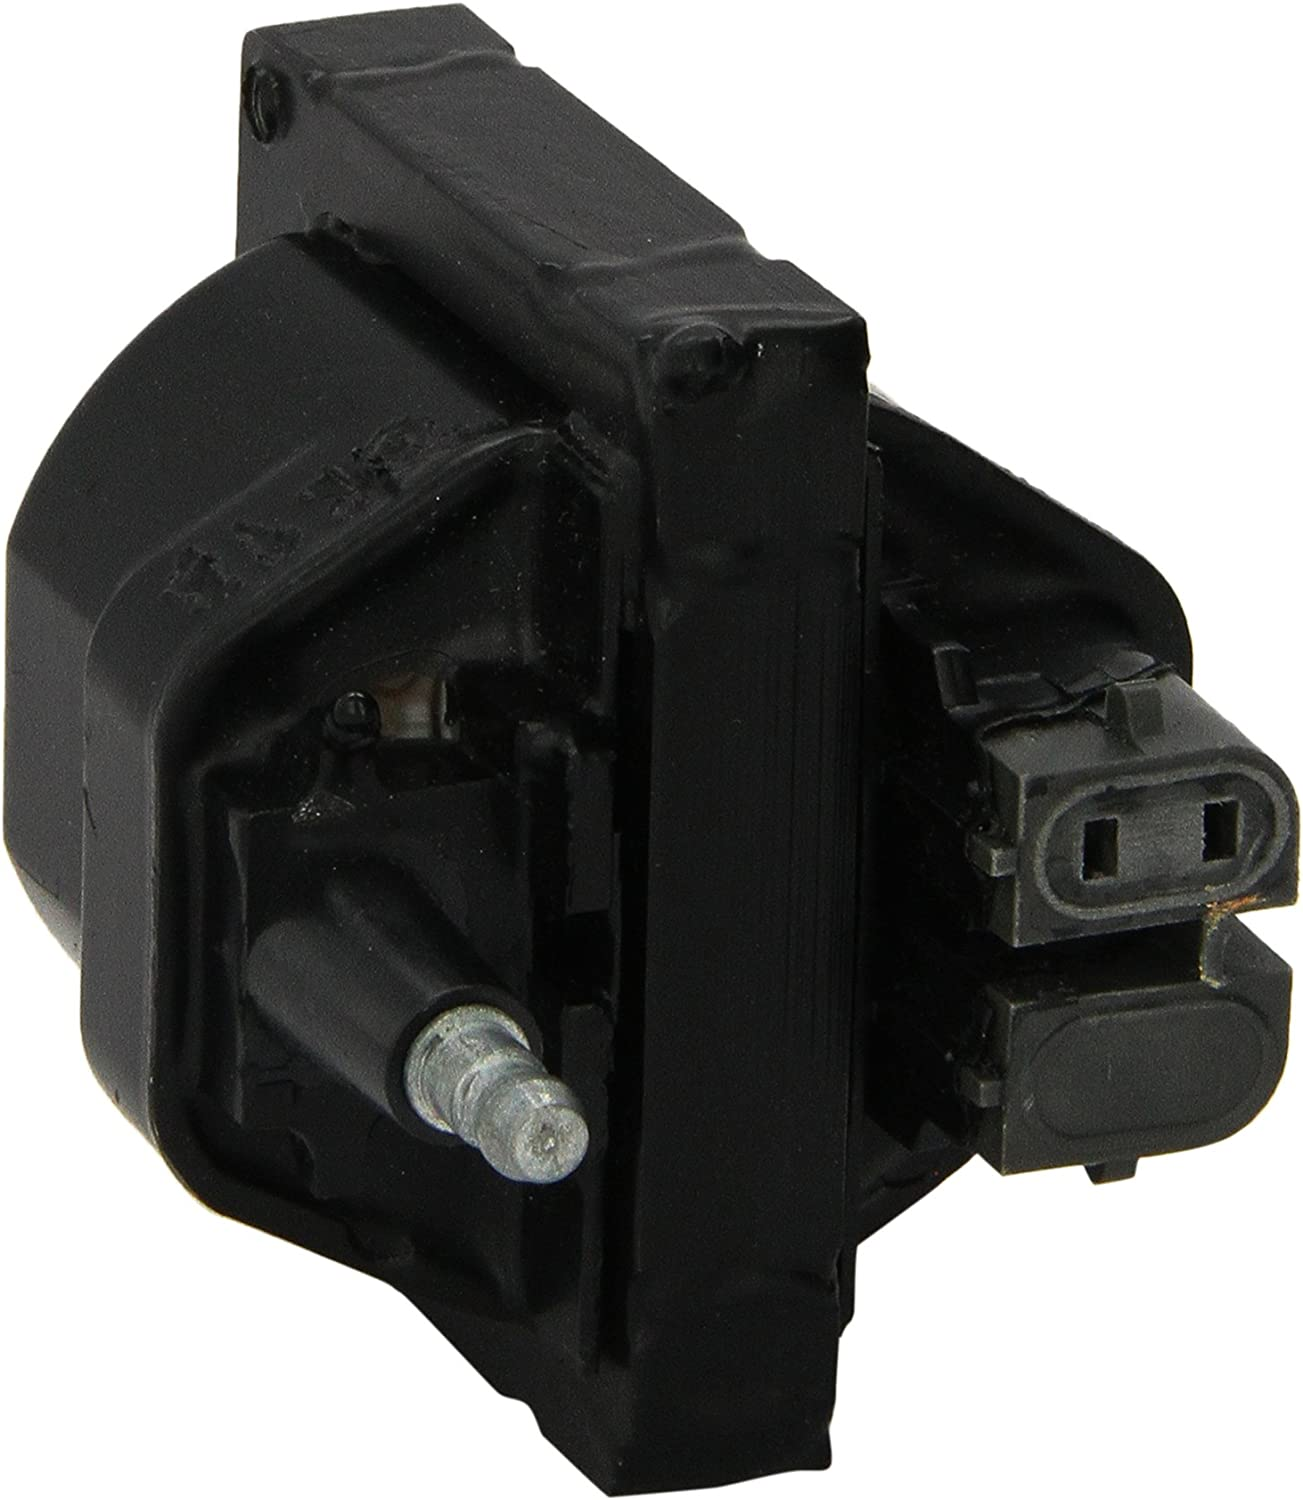 ACDelco 355W GM Original Equipment Ignition Coil Wire